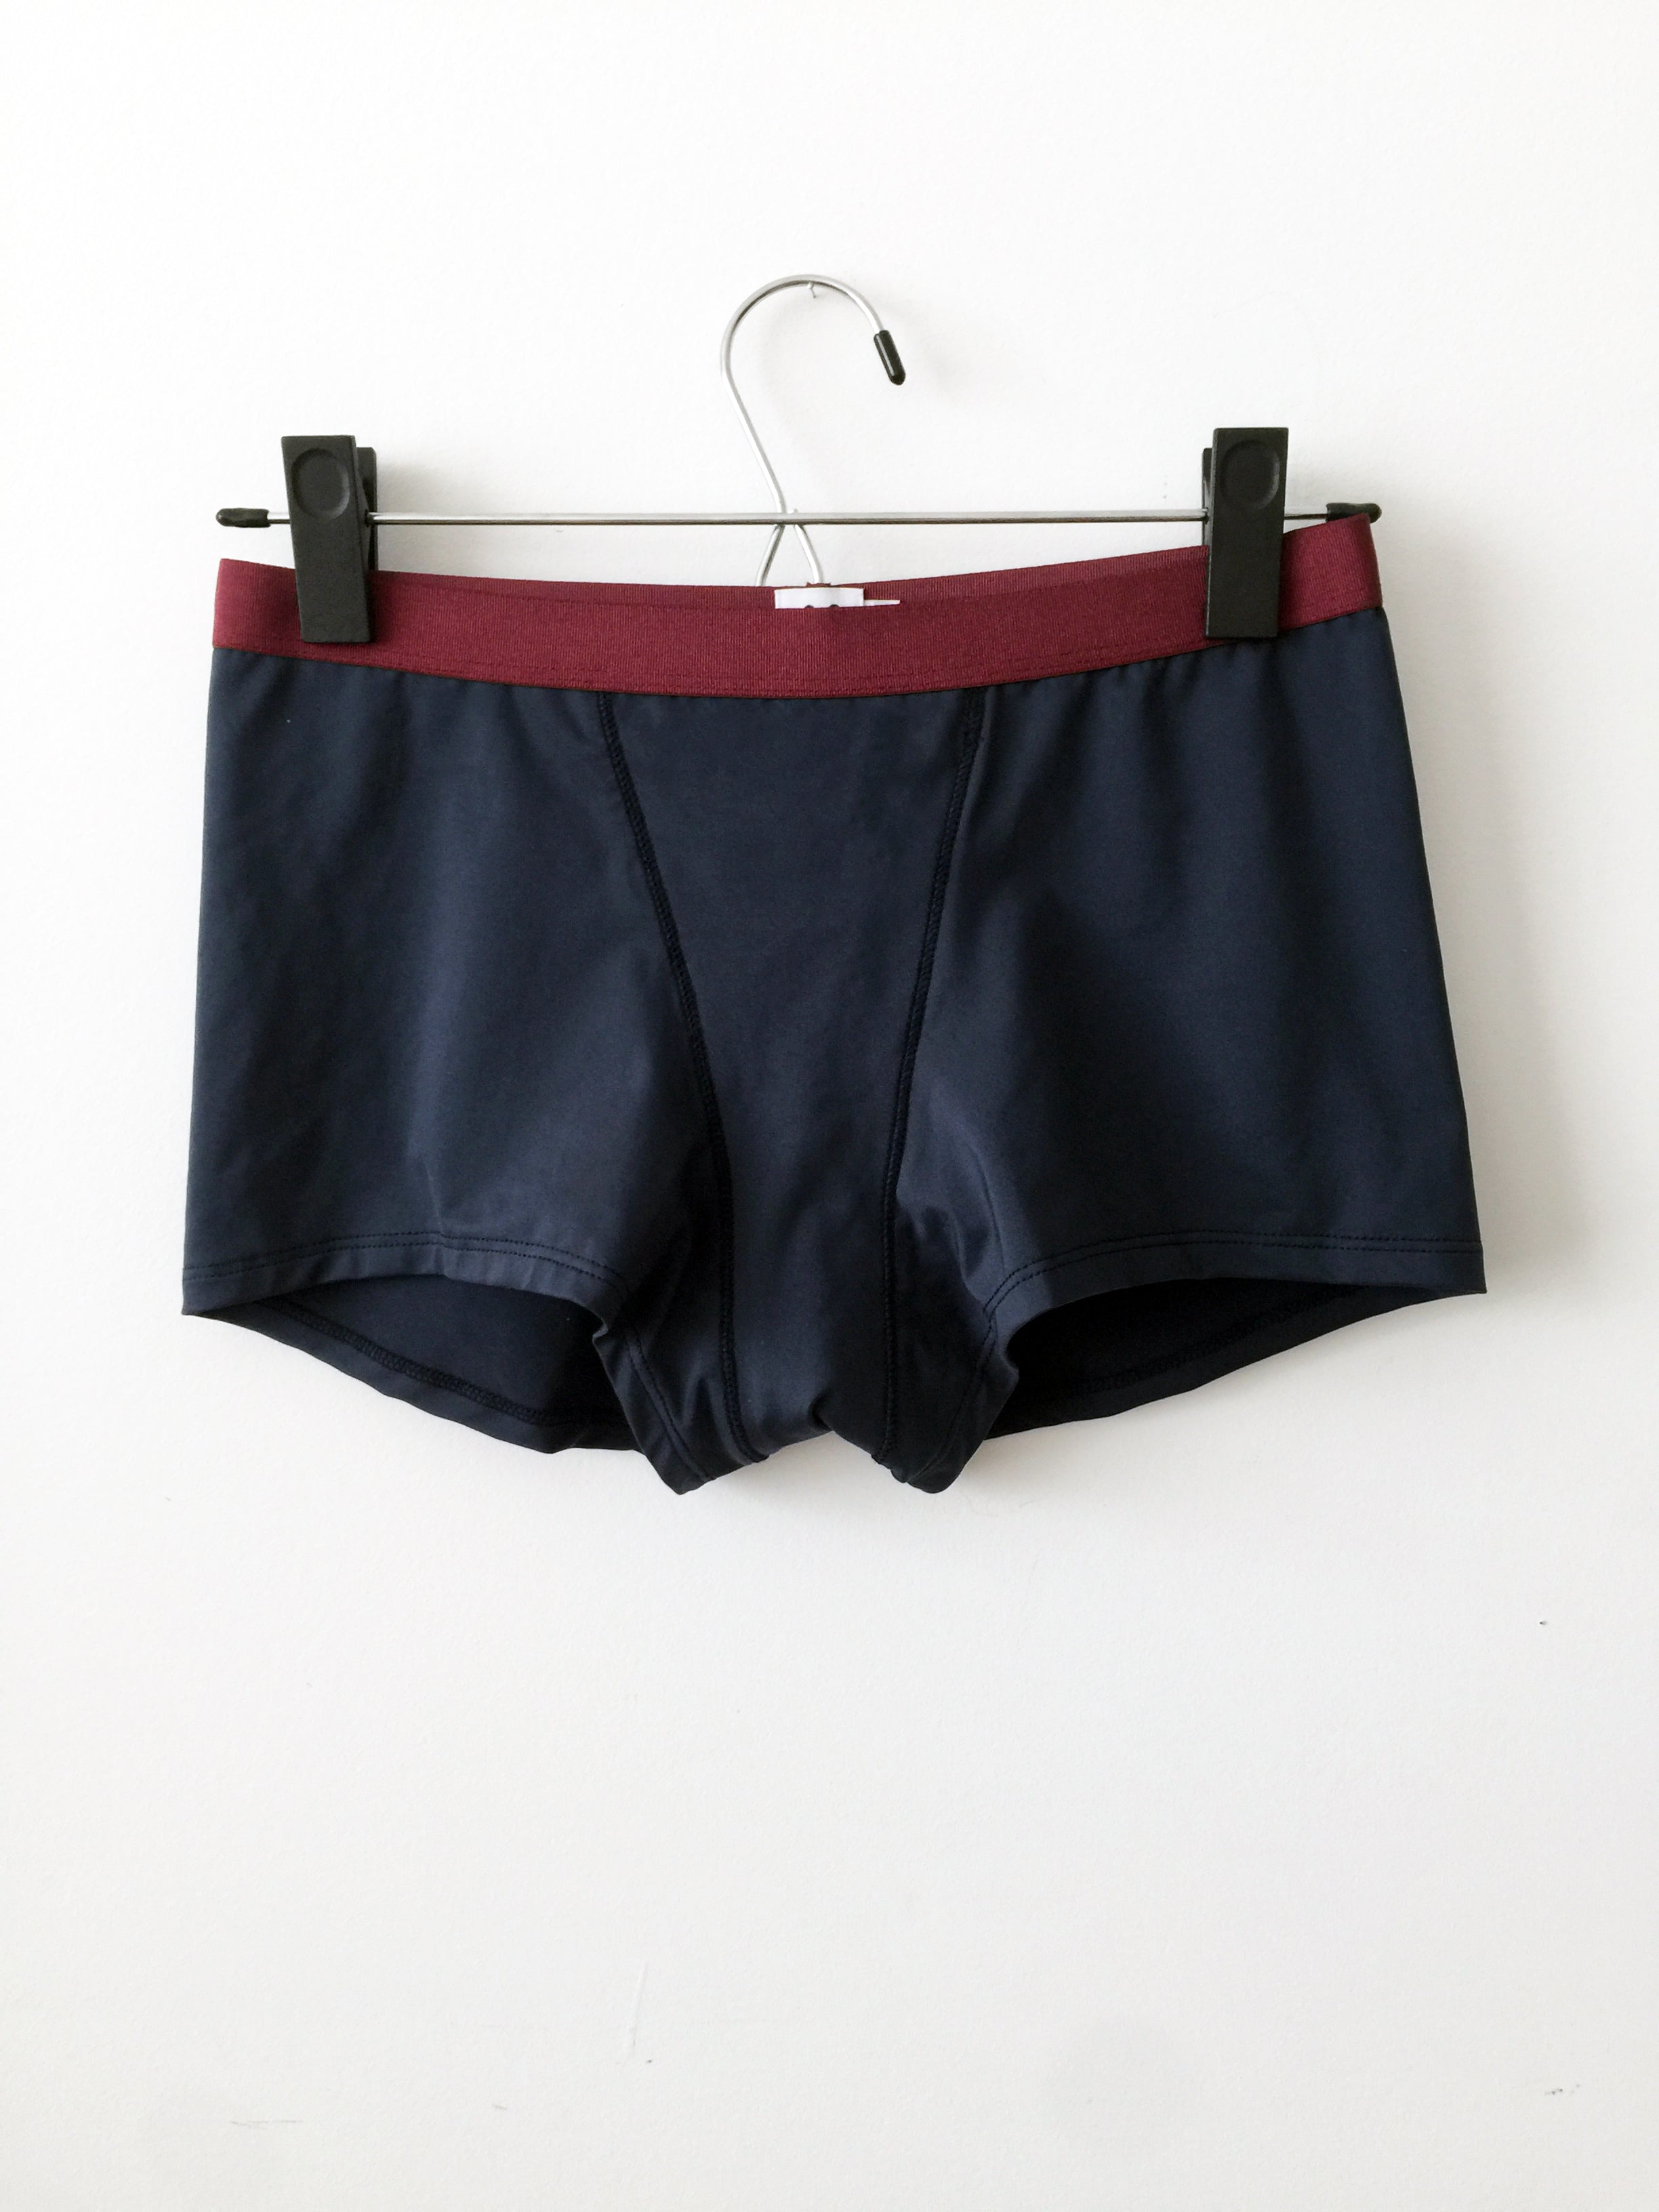 boxer brief, navy and red